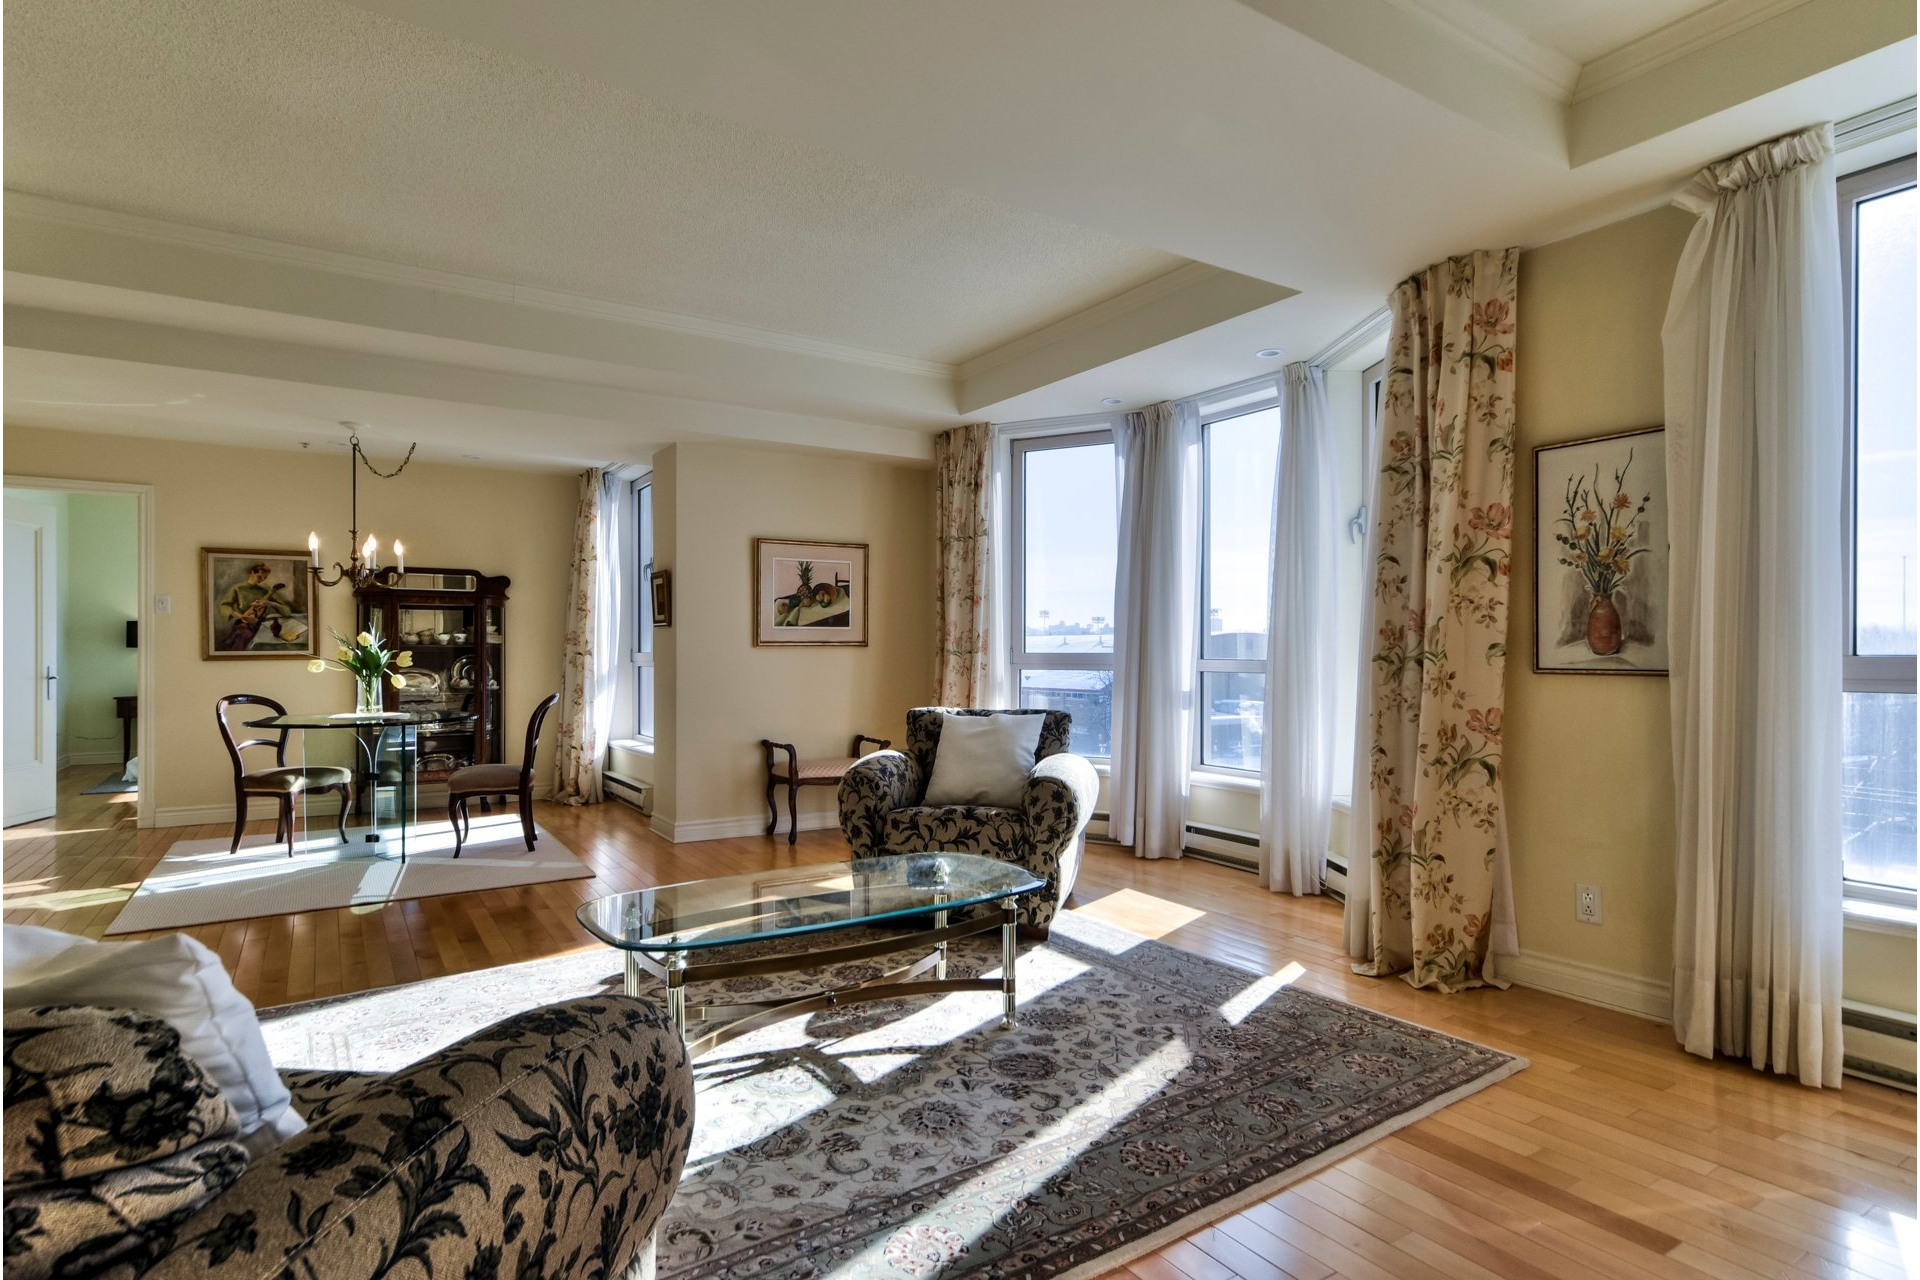 image 5 - Apartment For sale Mont-Royal - 8 rooms